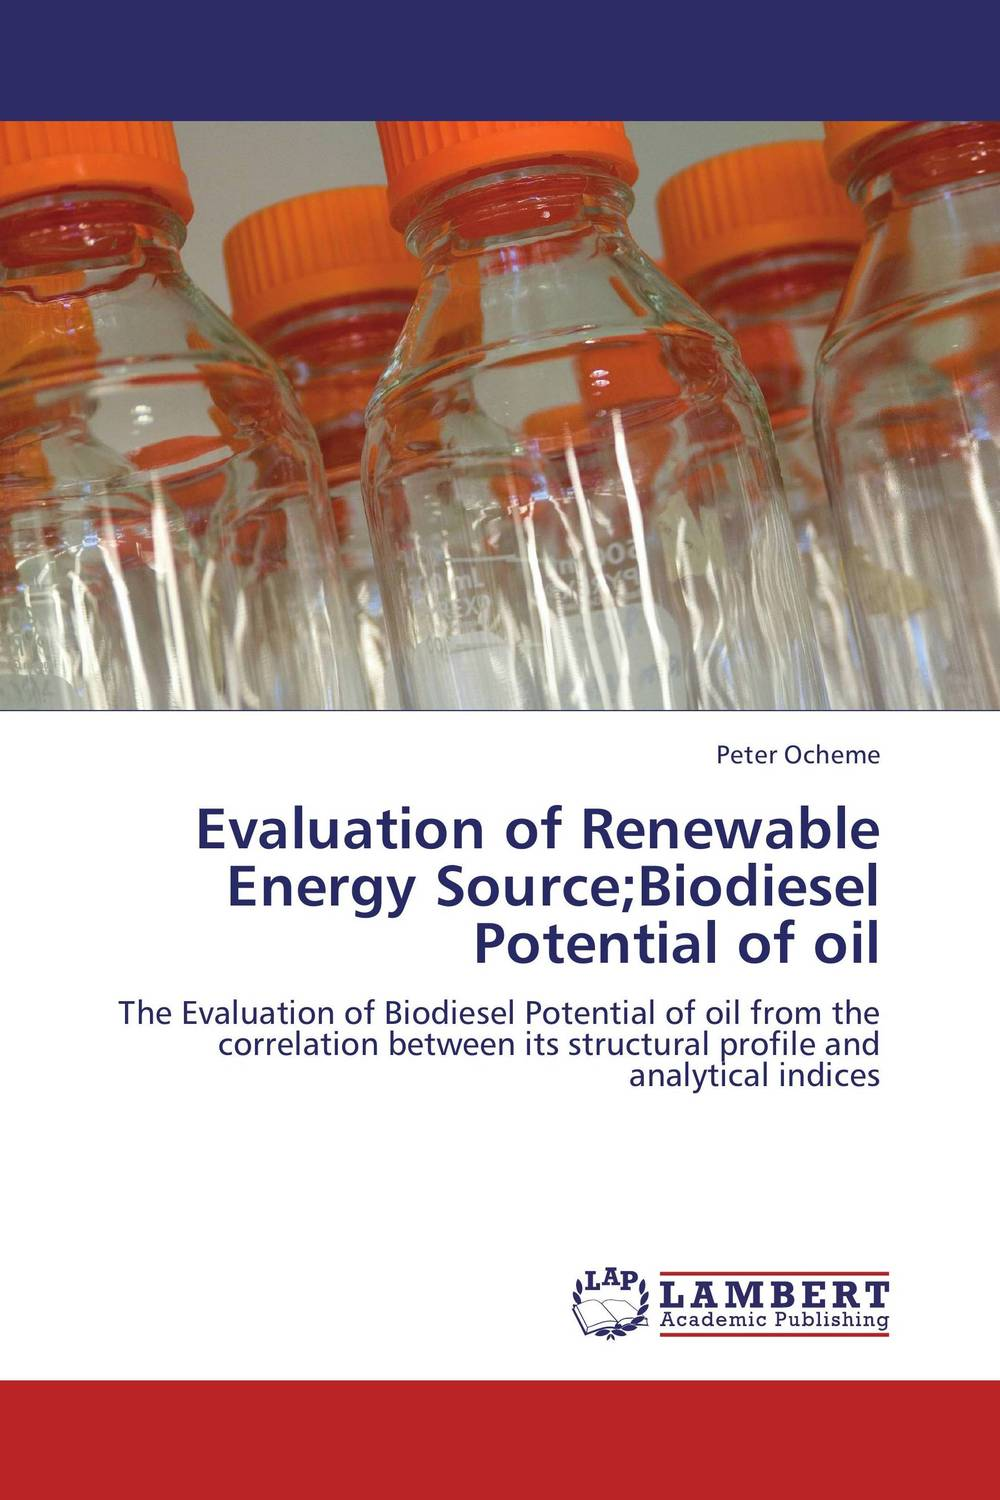 Evaluation of Renewable Energy Source;Biodiesel Potential of oil the role of evaluation as a mechanism for advancing principal practice